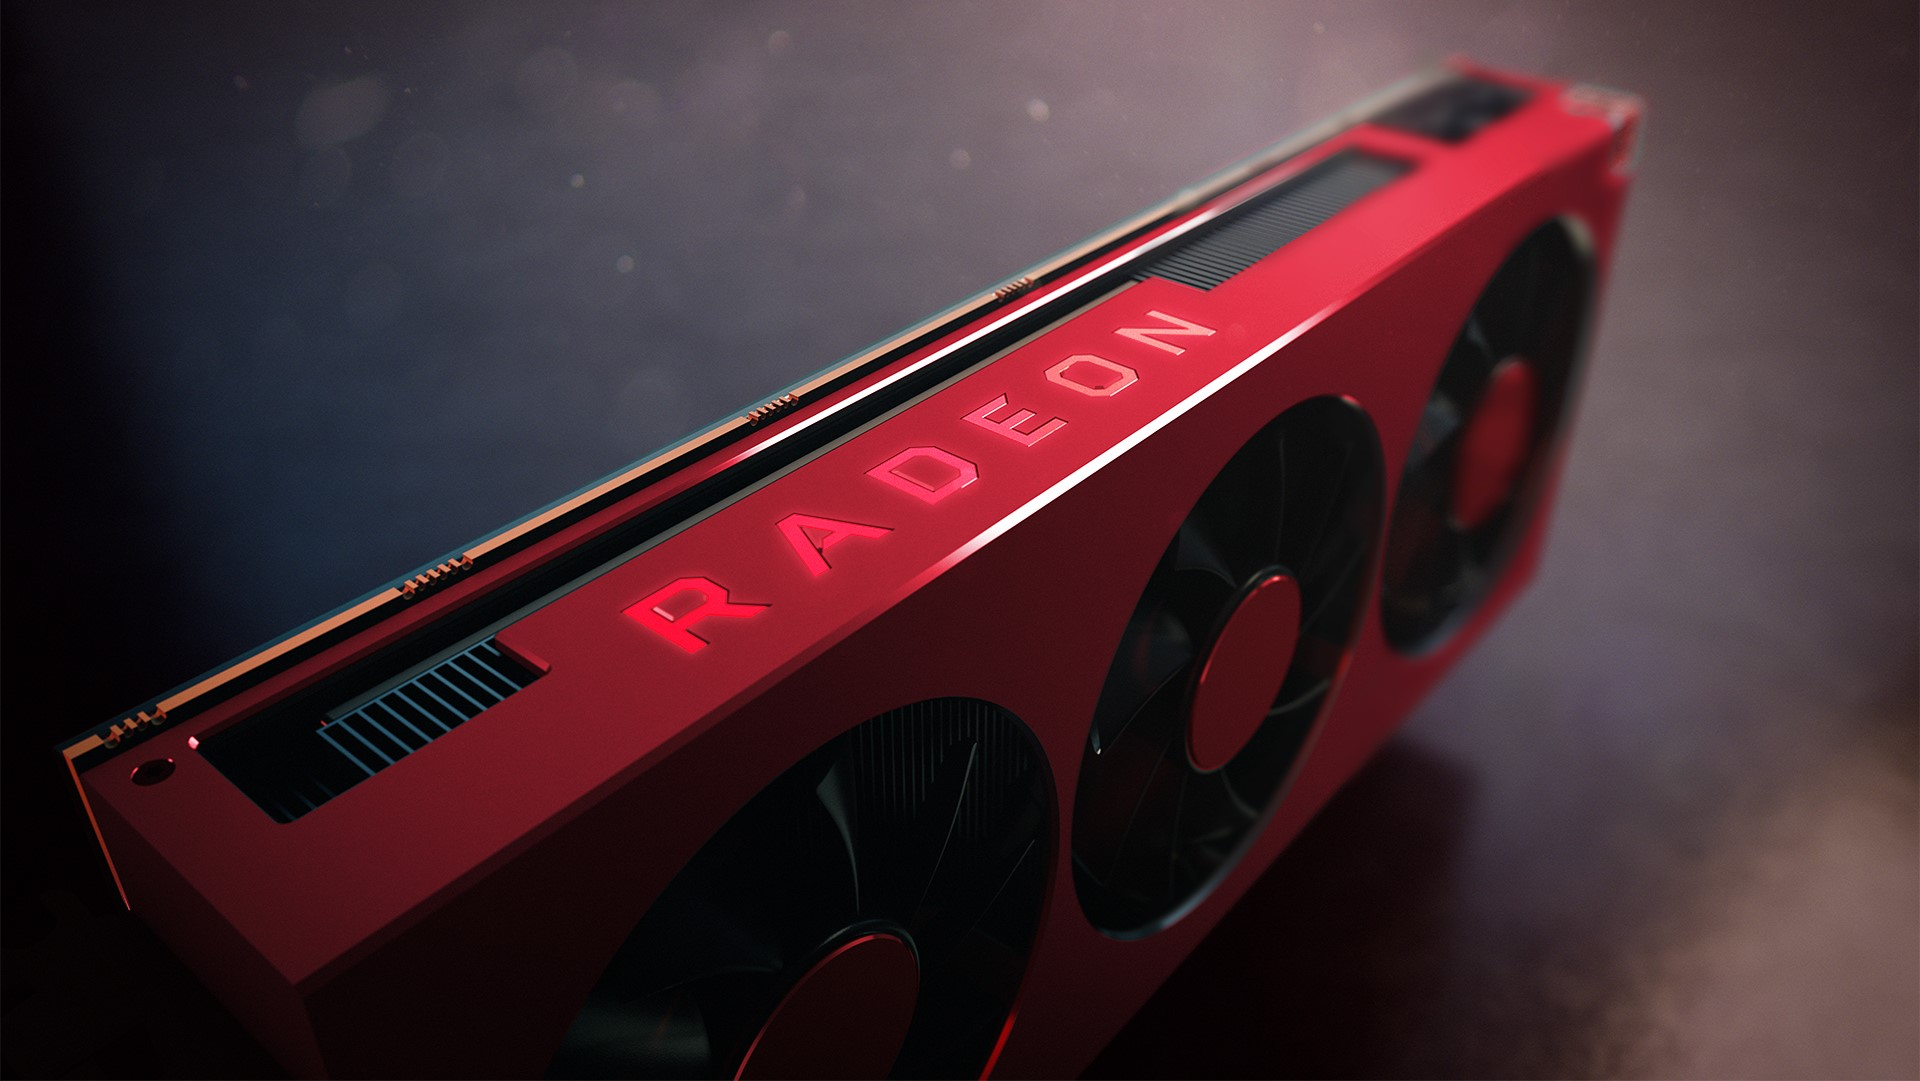 amd radeon rx big navi 5950 xt nvidia killer